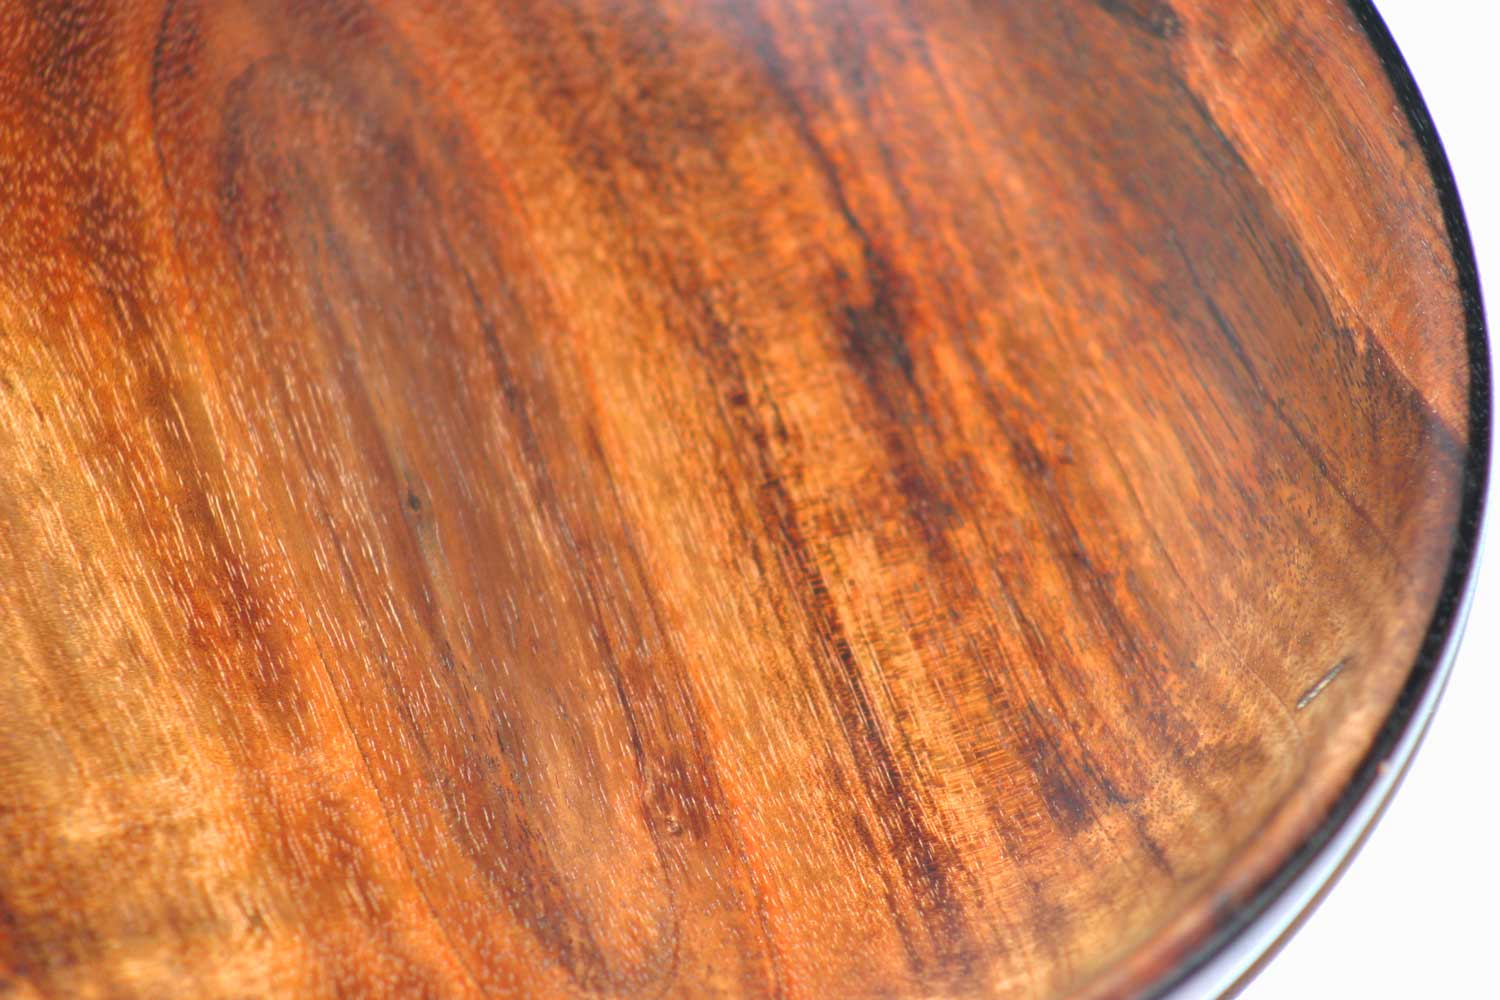 Koa 3 is one of the hand crafted Koa Wood Bowls Welo created showing the center heart of the tree.